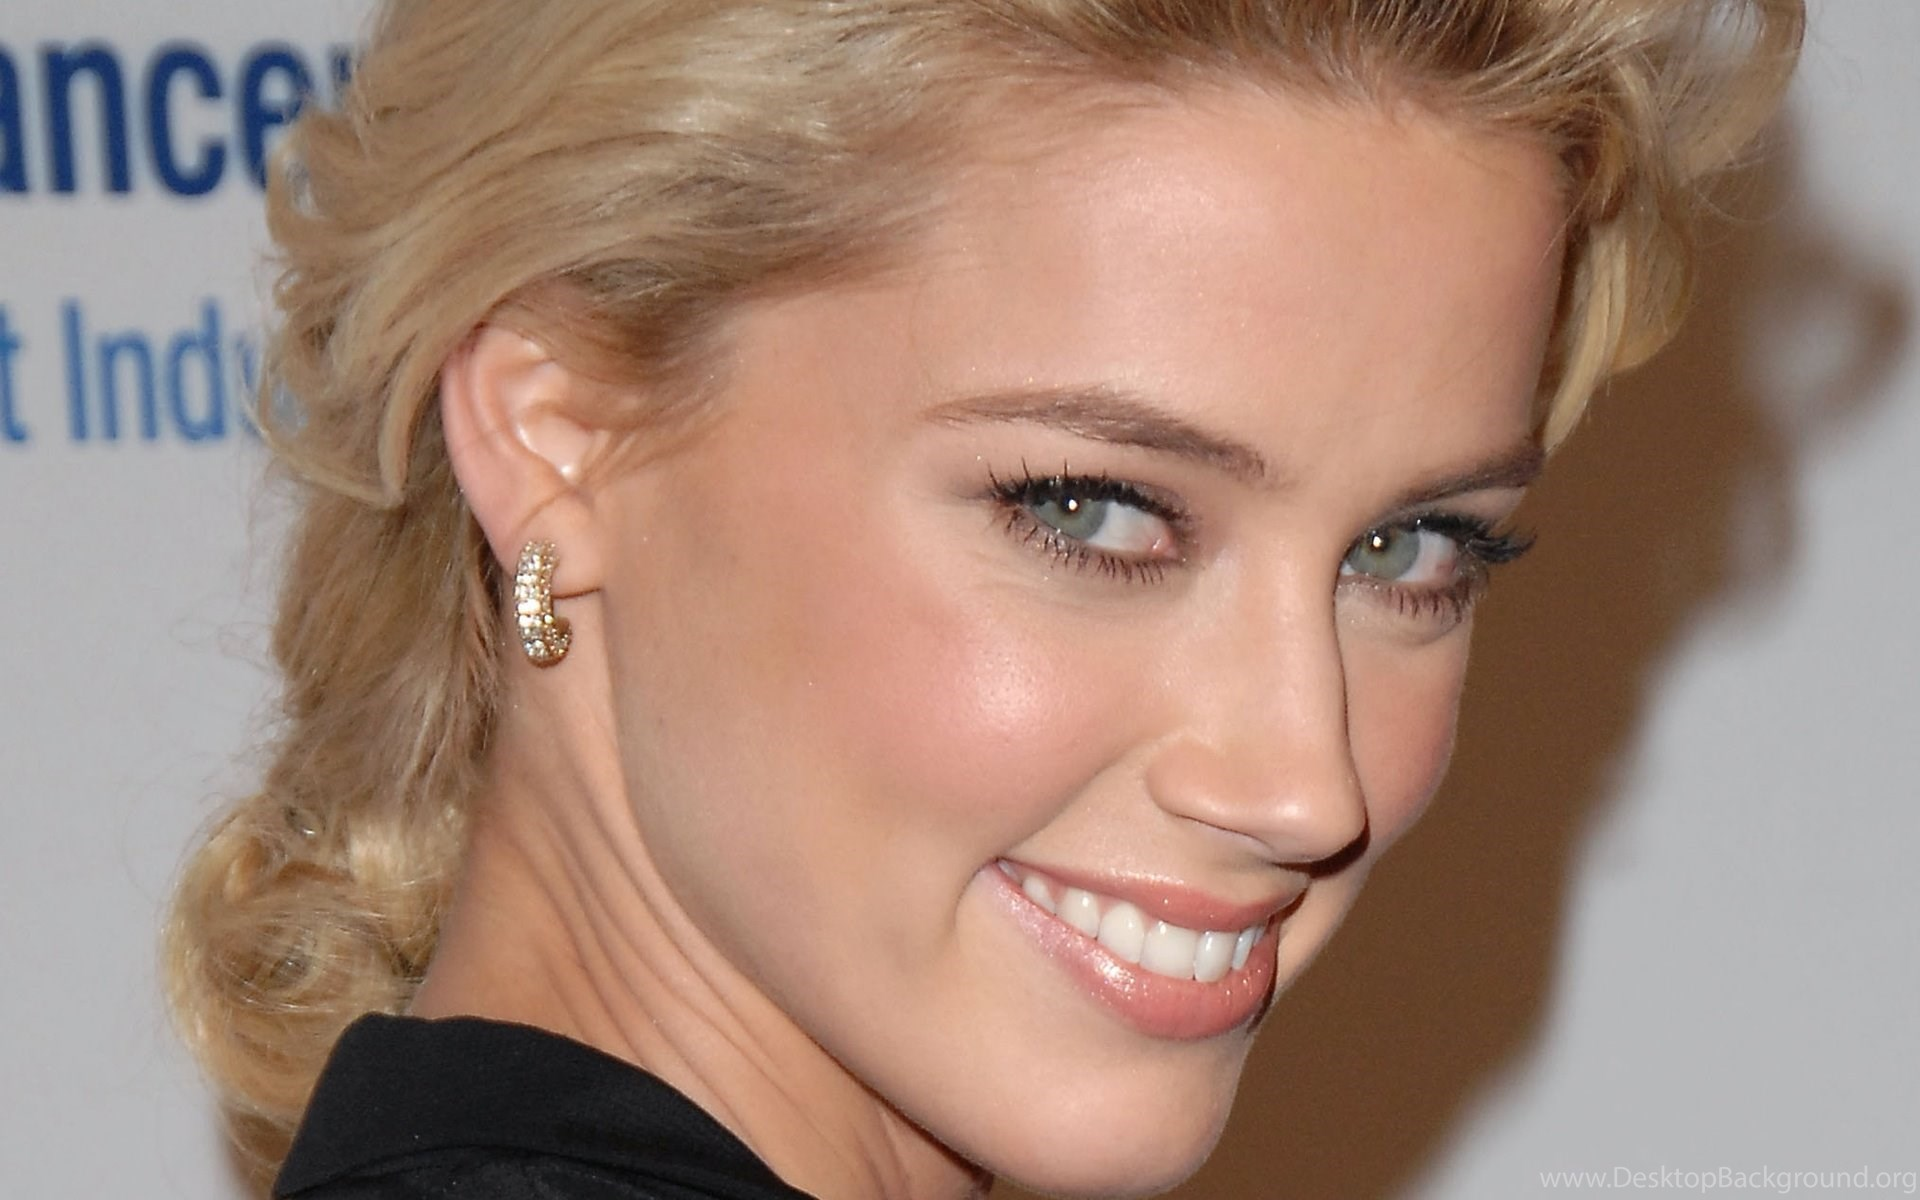 The video below features the ultimate compilation of actress Amber Heards nude moments As you can see Amber Heard is one shameless floozie who has no qualms